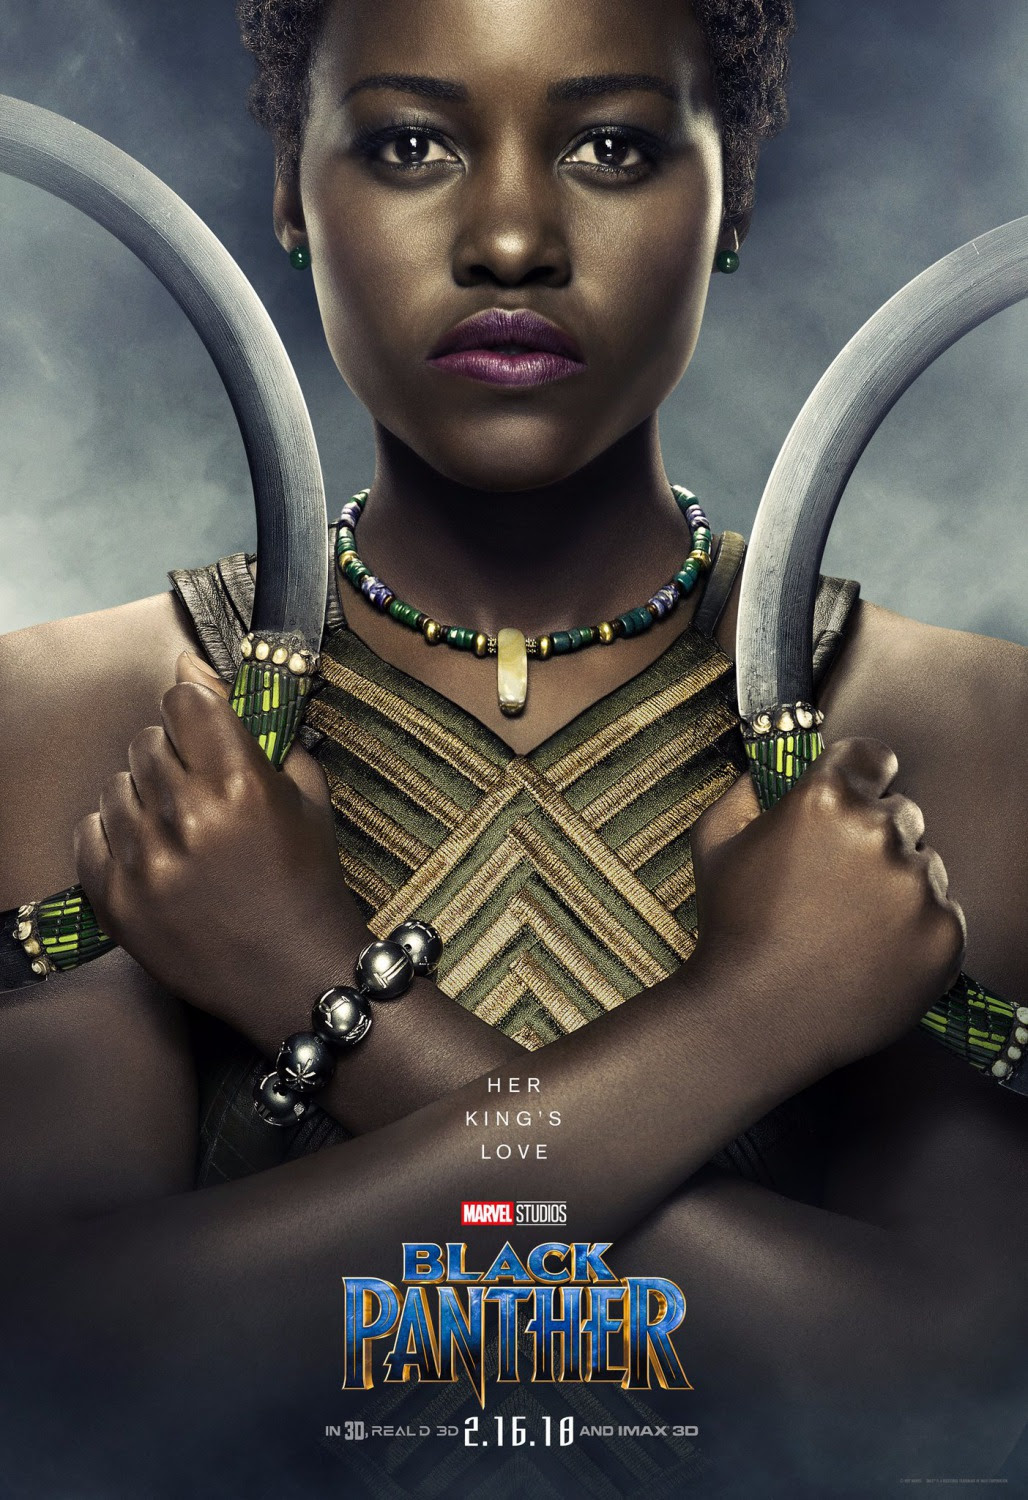 Extra Large Movie Poster Image for Black Panther (#6 of 23)